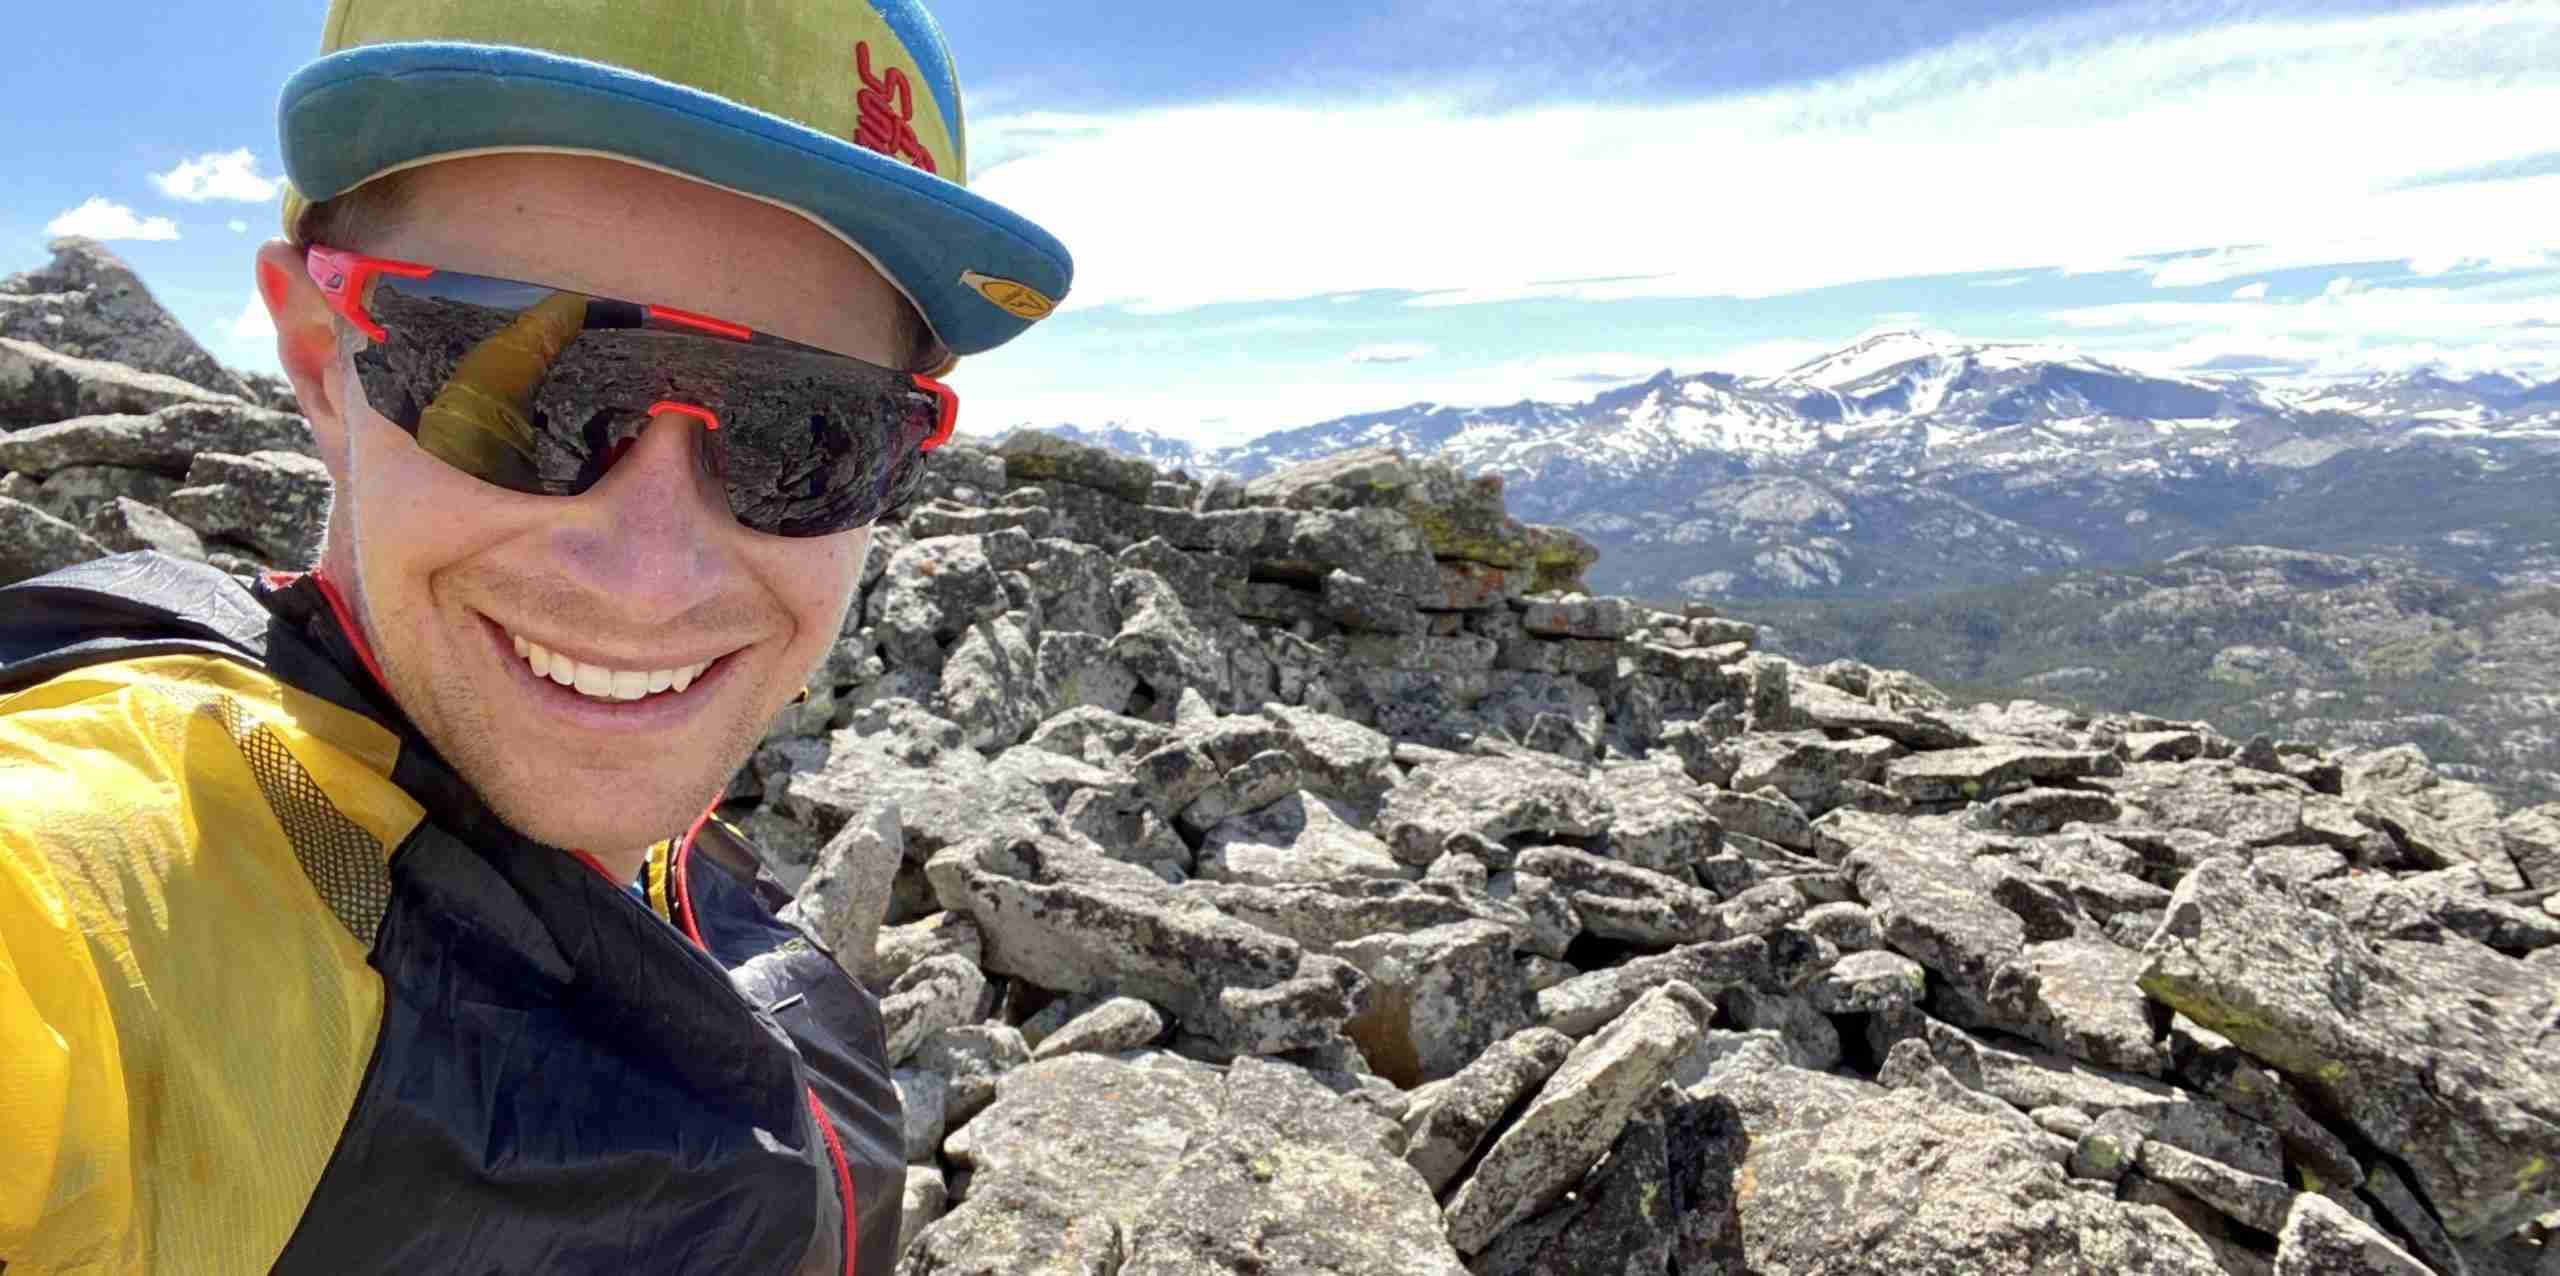 Gabe Joyes and His Record-Breaking 100-mile Run